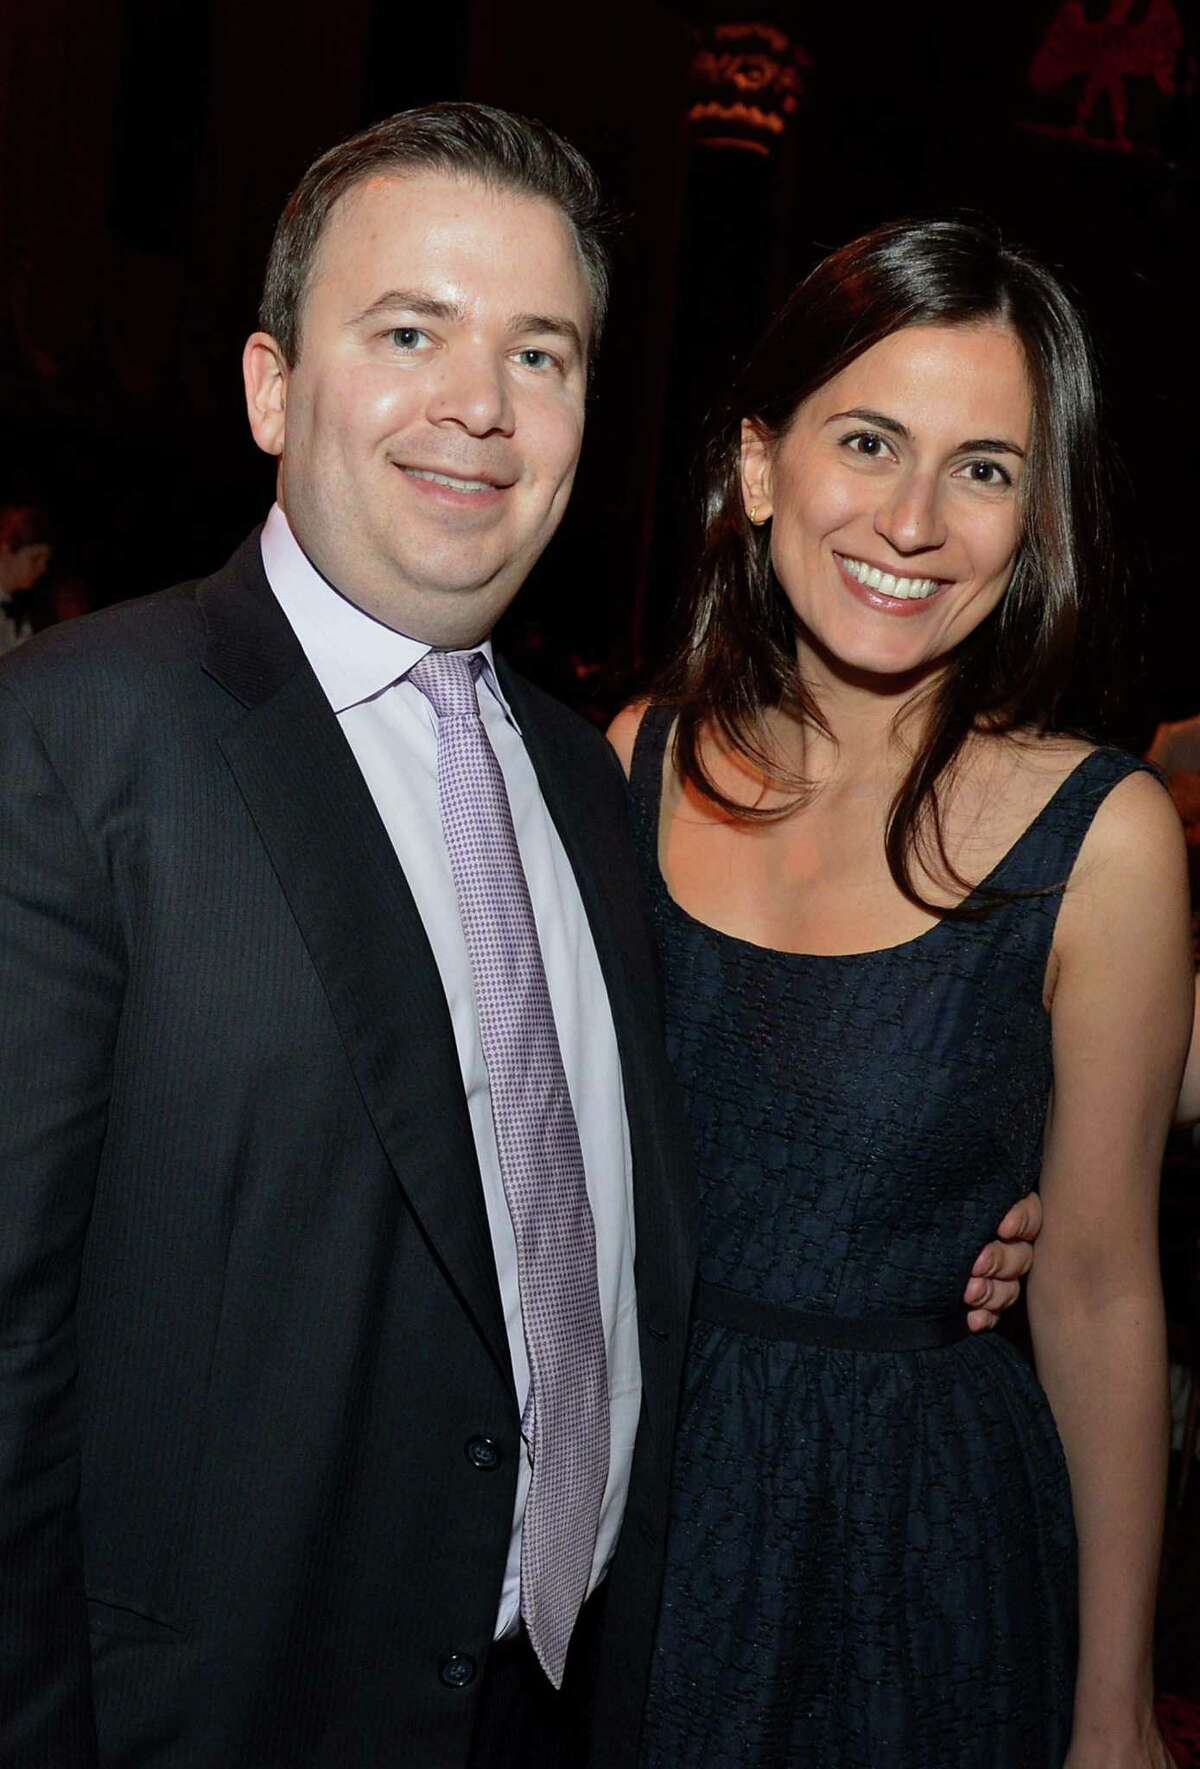 Boaz Weinstein, managing partner and founder of Saba Capital Management, and wife Tali Weinstein, a prosecutor with the U.S. attorney's office, during the Paris Review Spring Revel gala in New York on April 3, 2012.